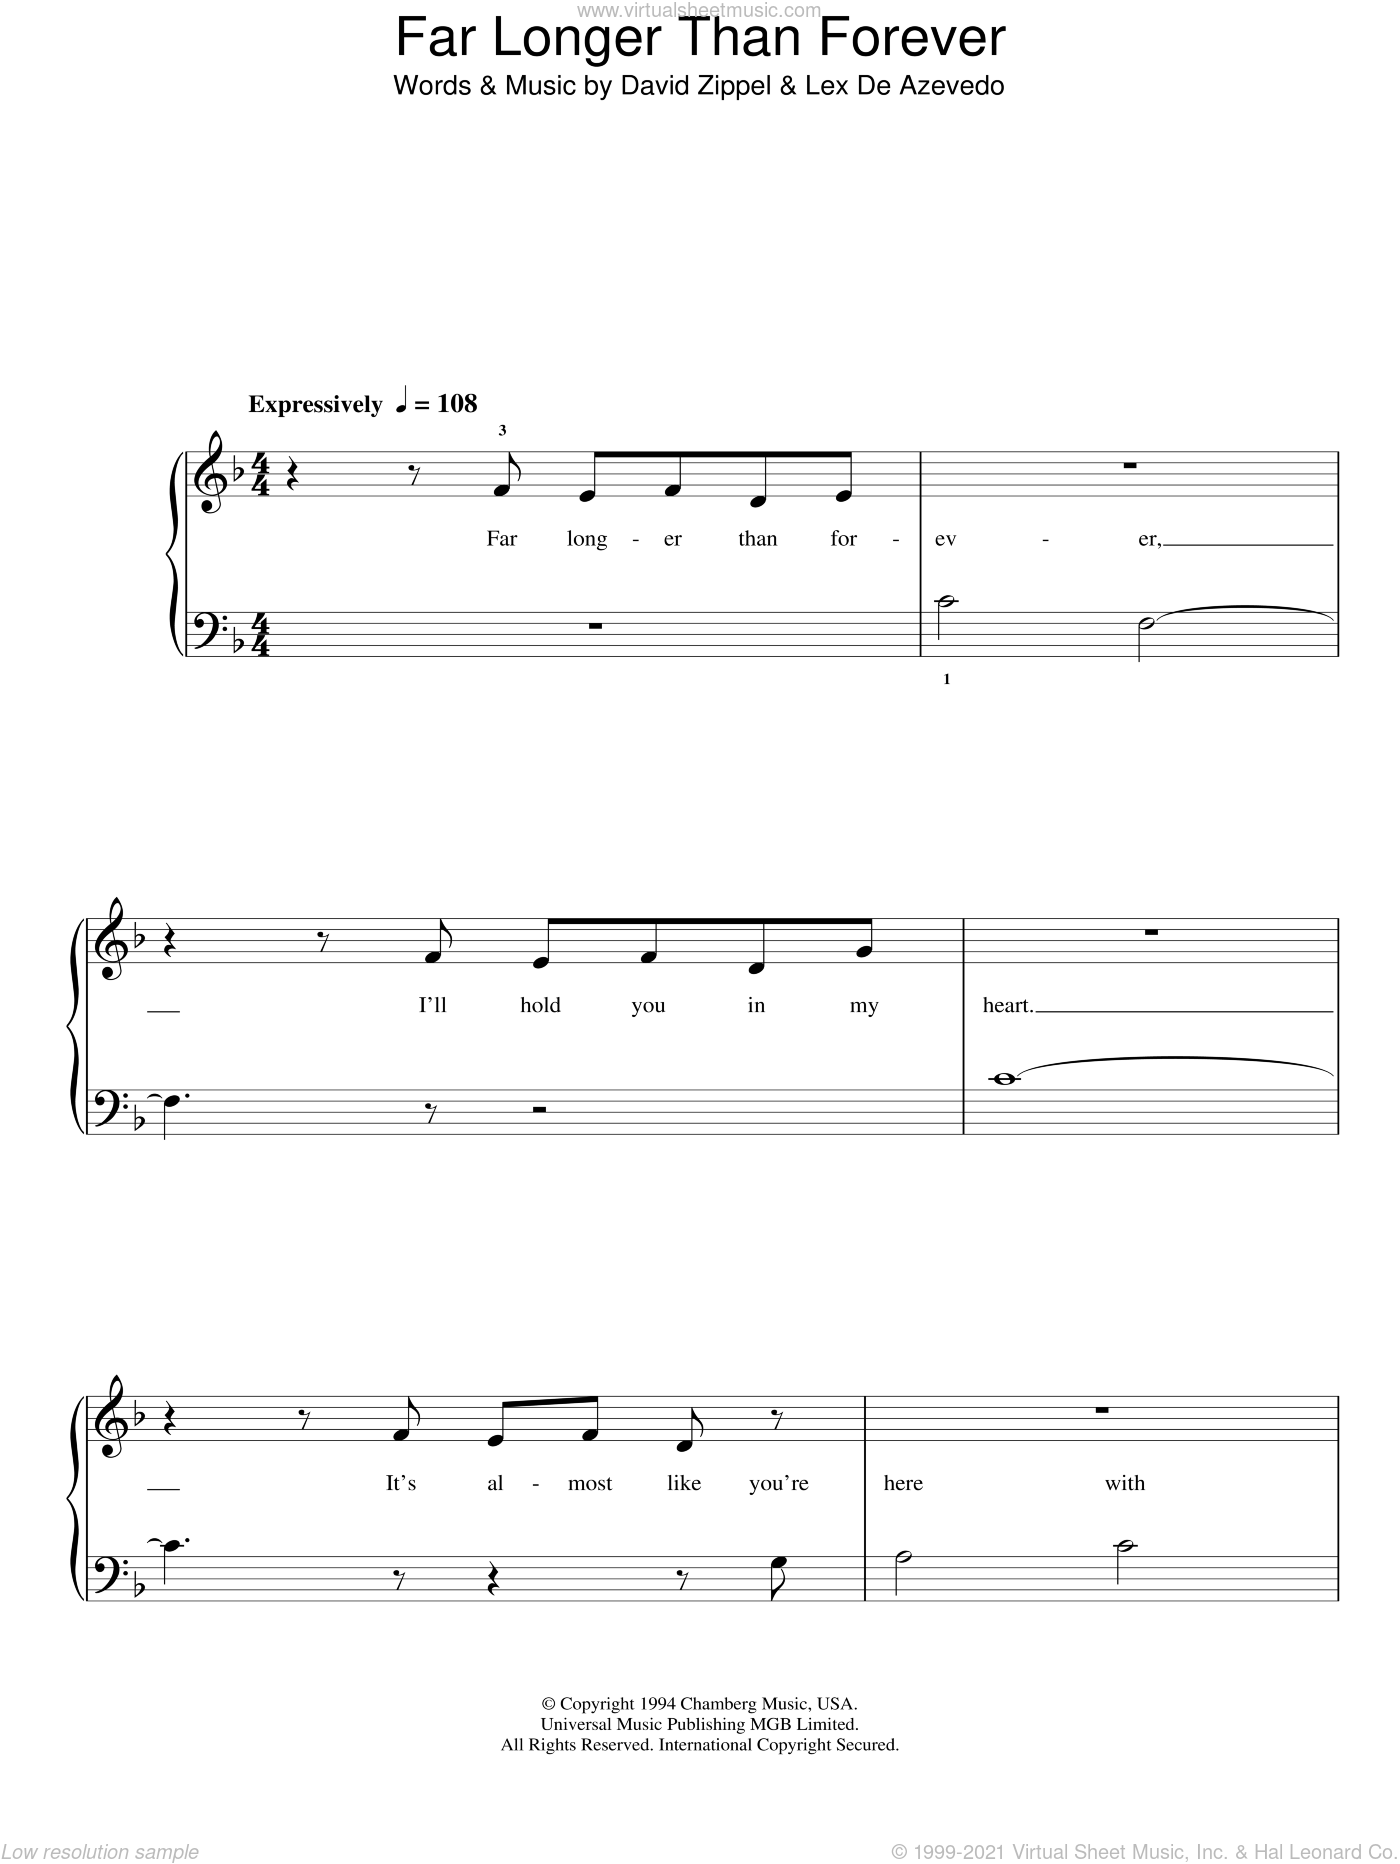 Far Longer Than Forever sheet music for piano solo by David Zippel and Lex De Azevedo, easy skill level